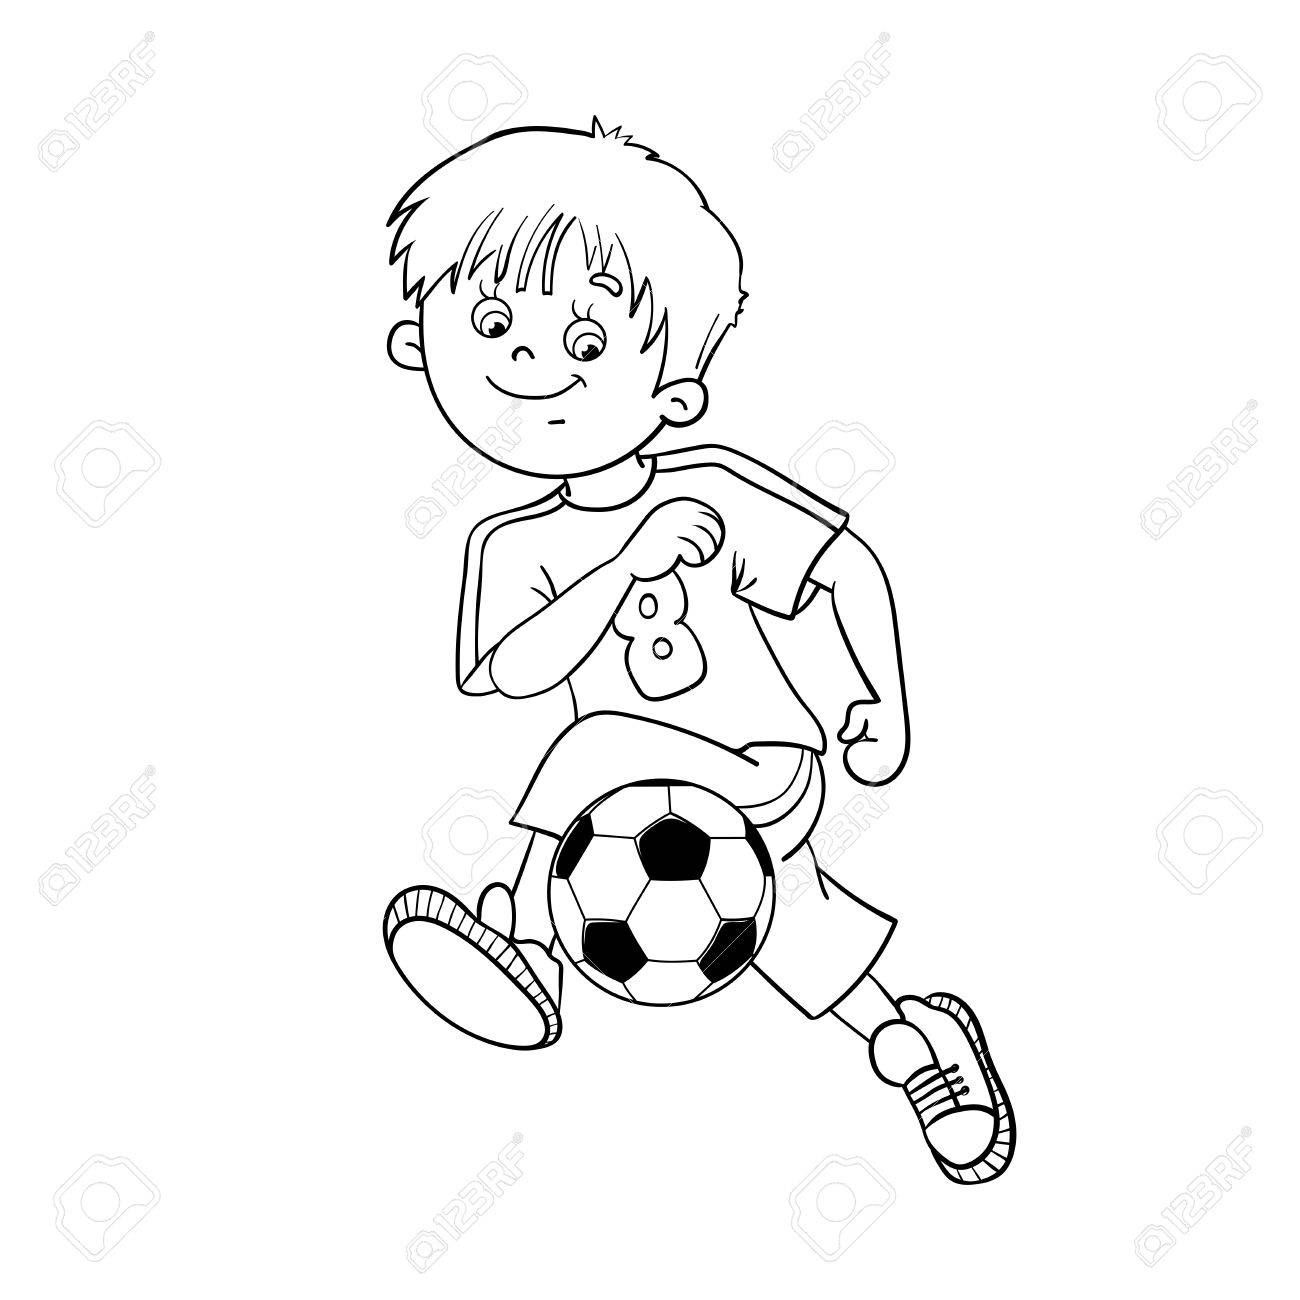 Coloring Page Outline Of A Soccer Boy Royalty Free Cliparts, Vectors ...